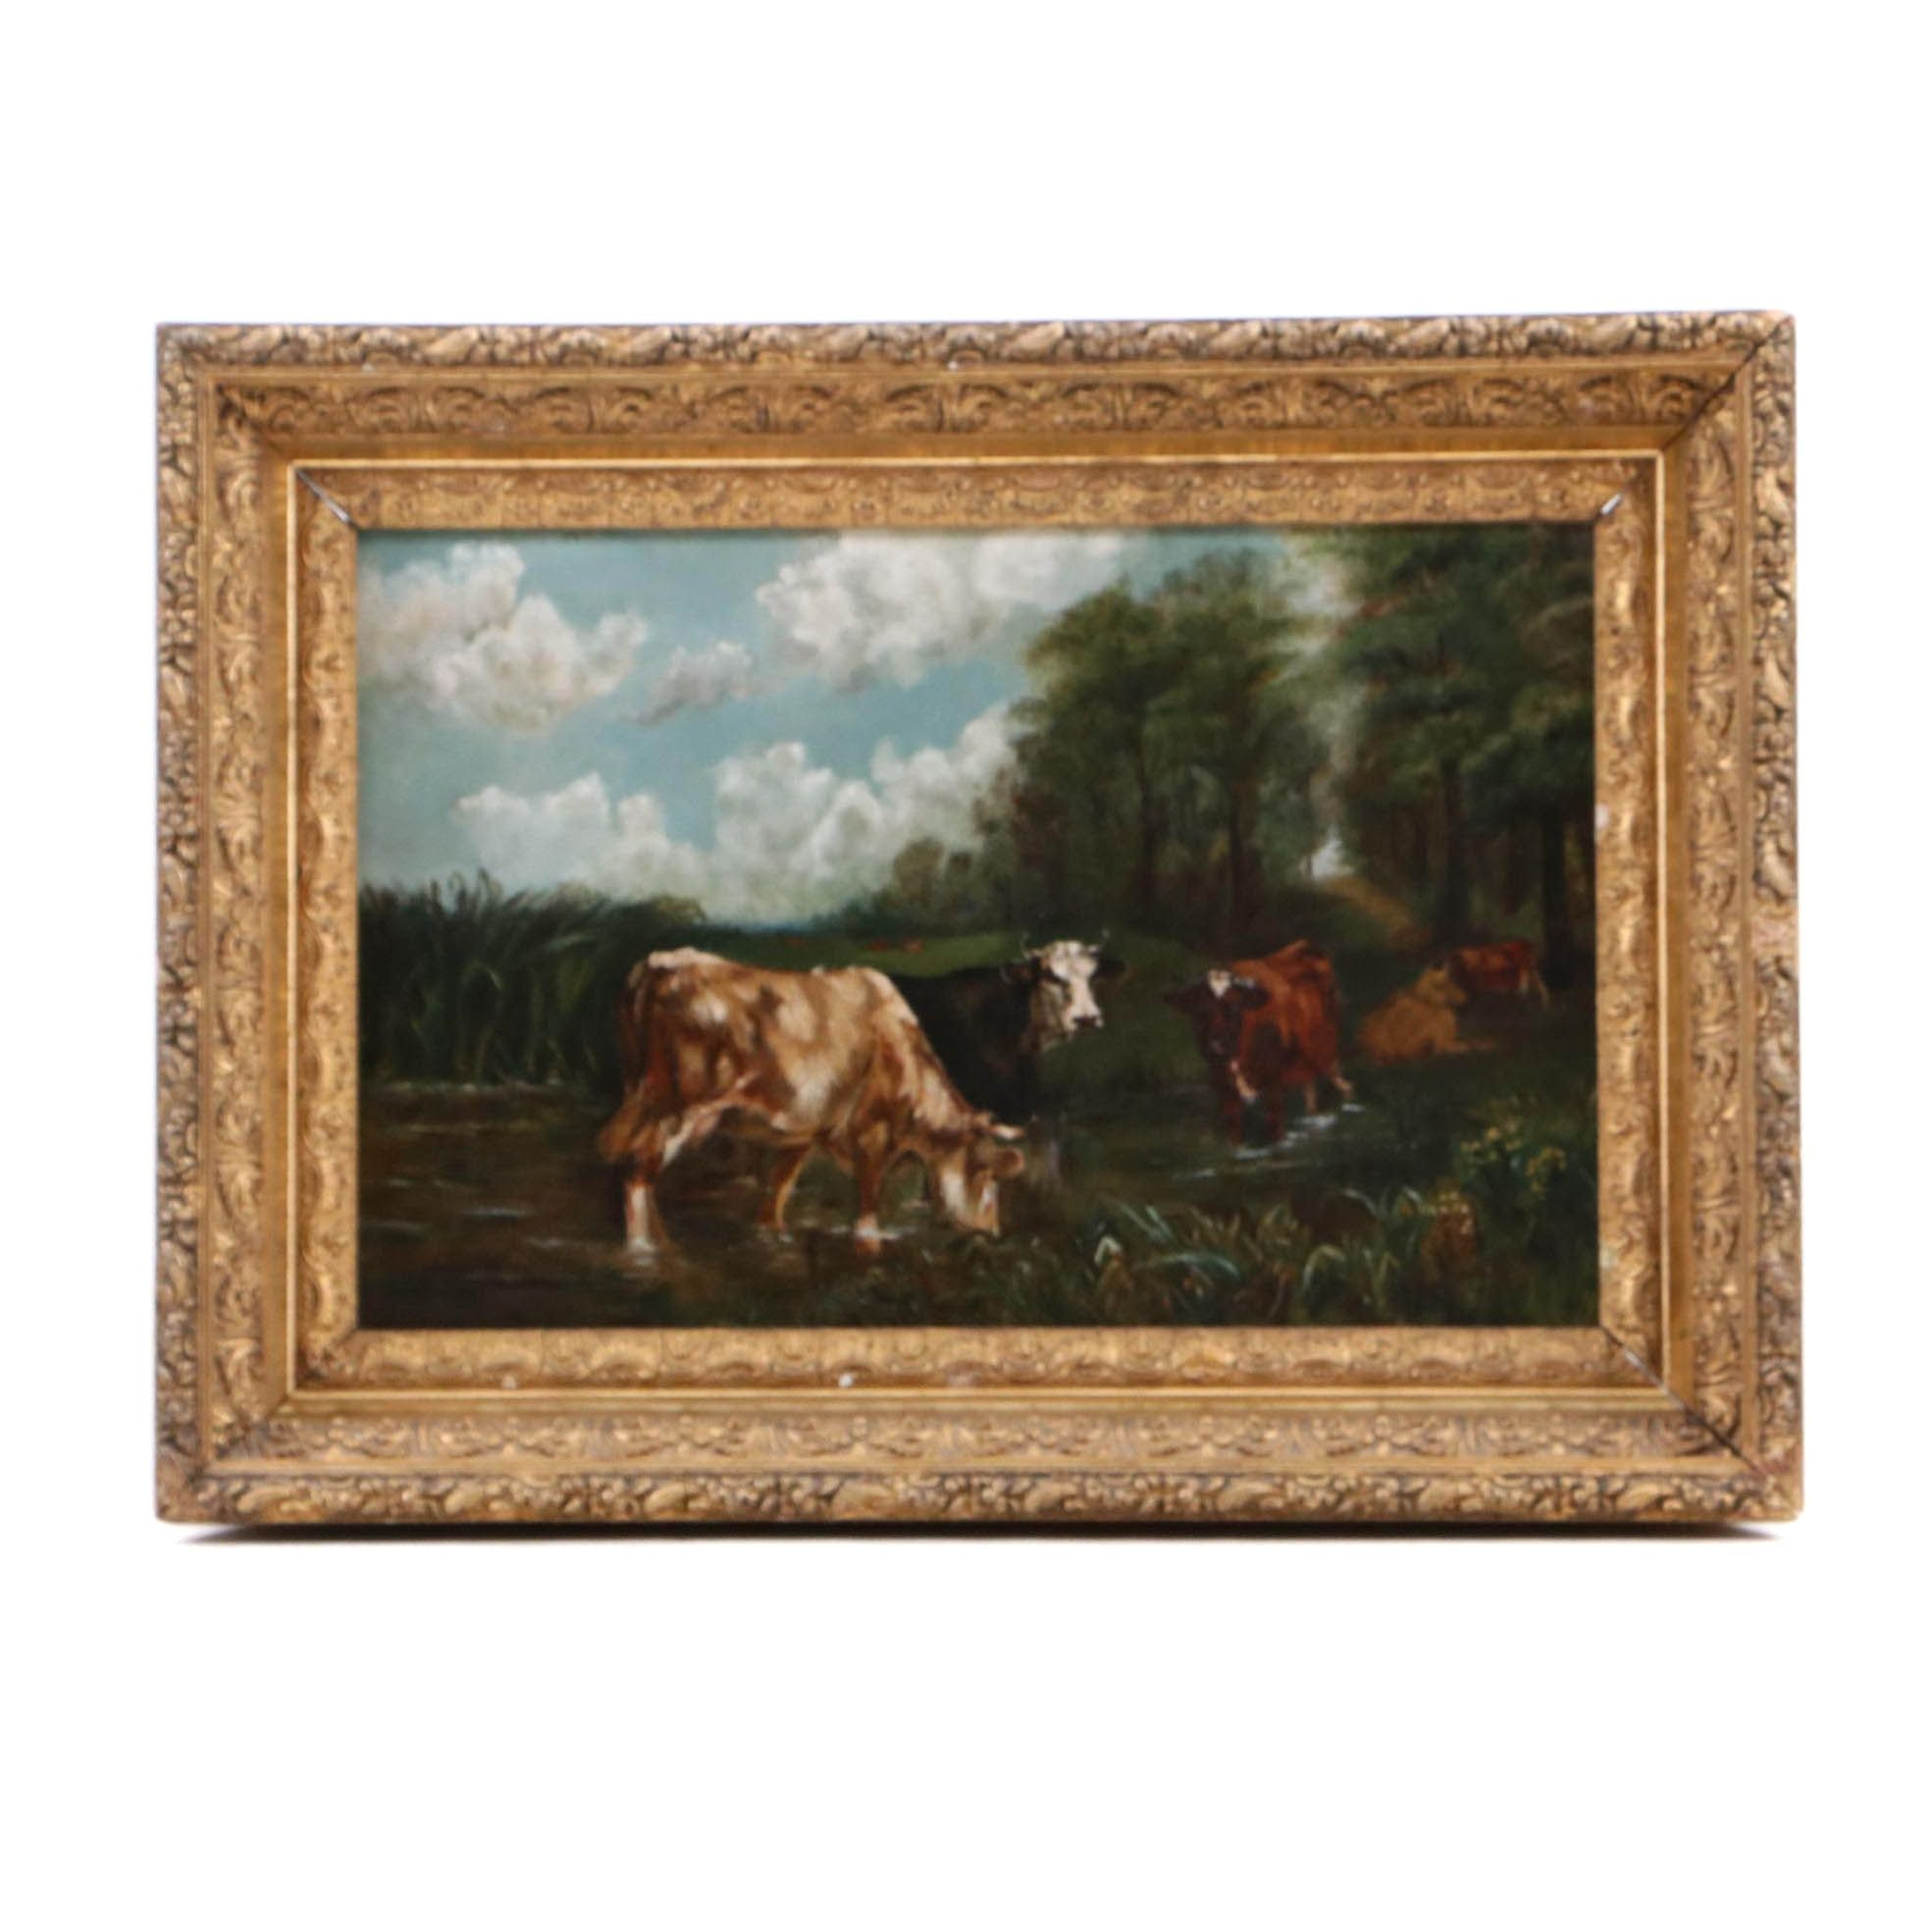 Oil Painting of Cattle in Bucolic Landscape